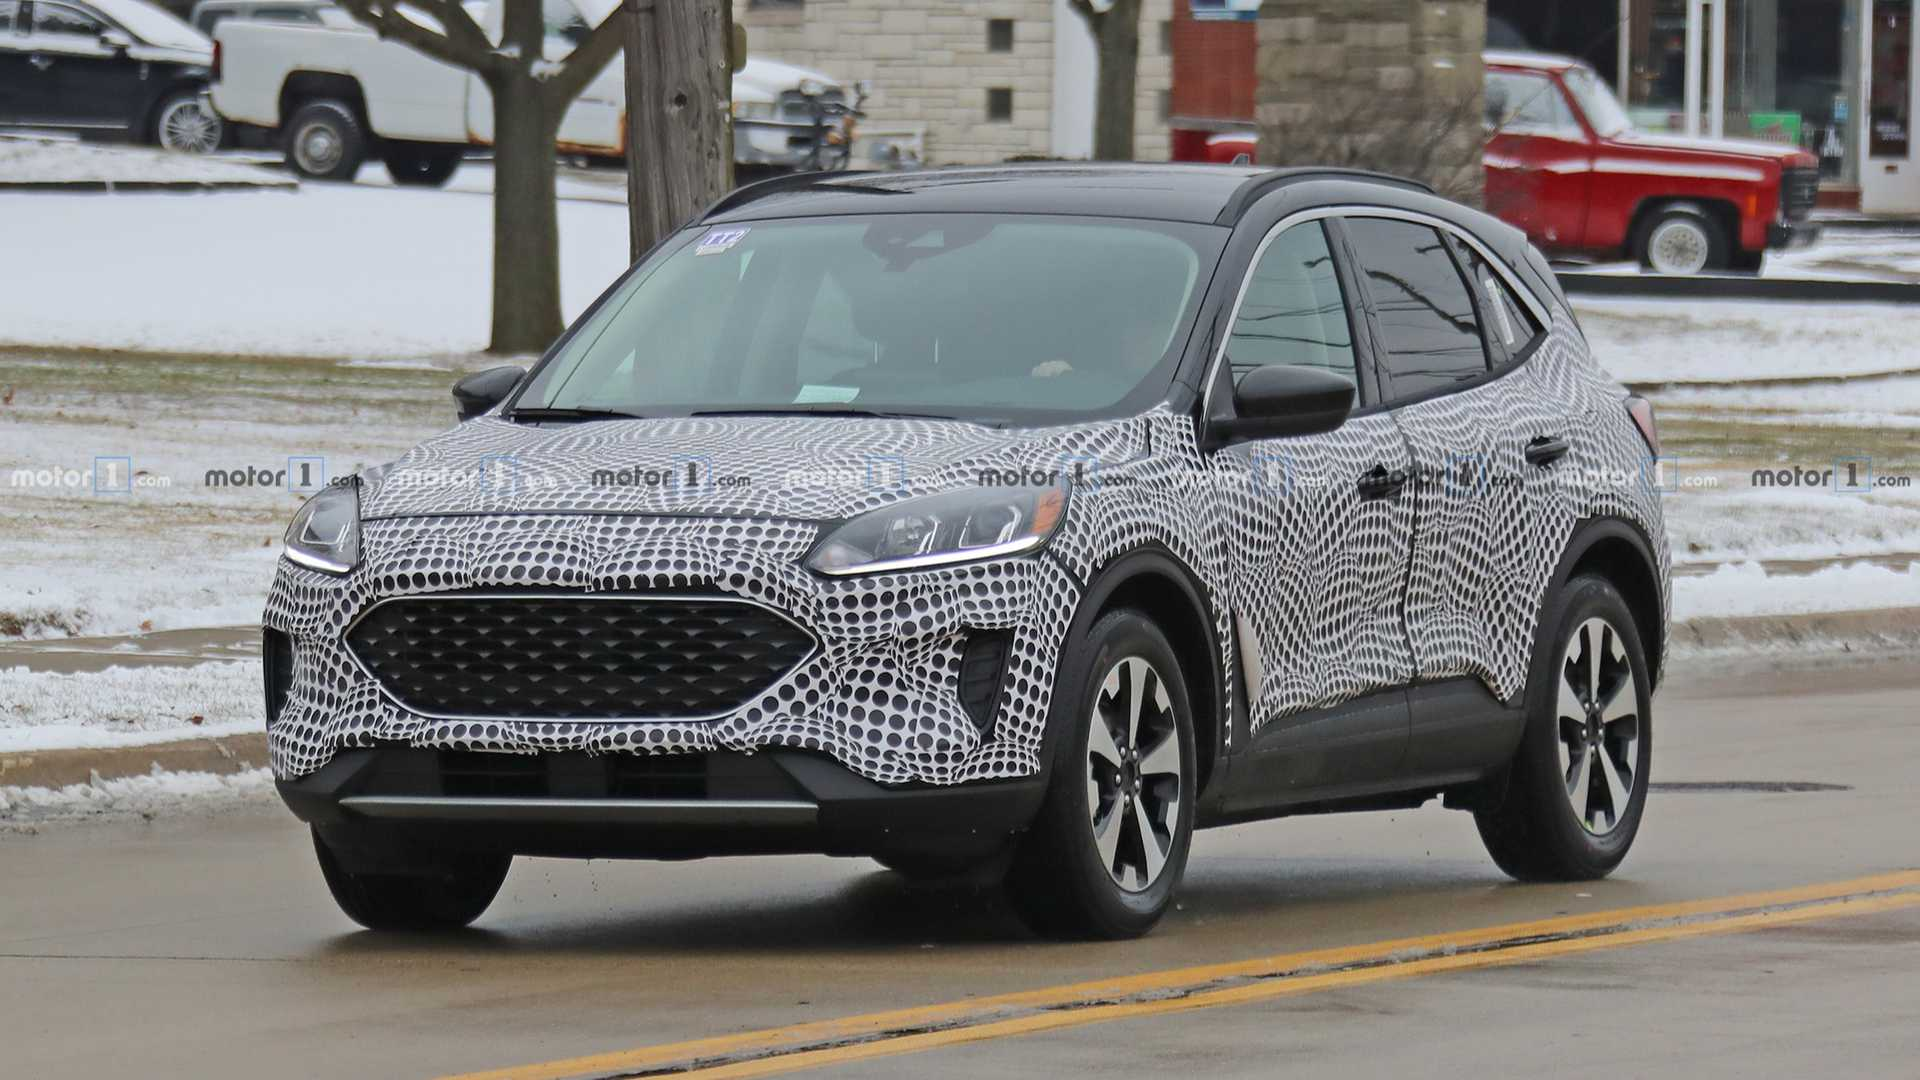 12 Ford Escape Spied Inside And Out, Hybrid Confirmed | ford escape hybrid